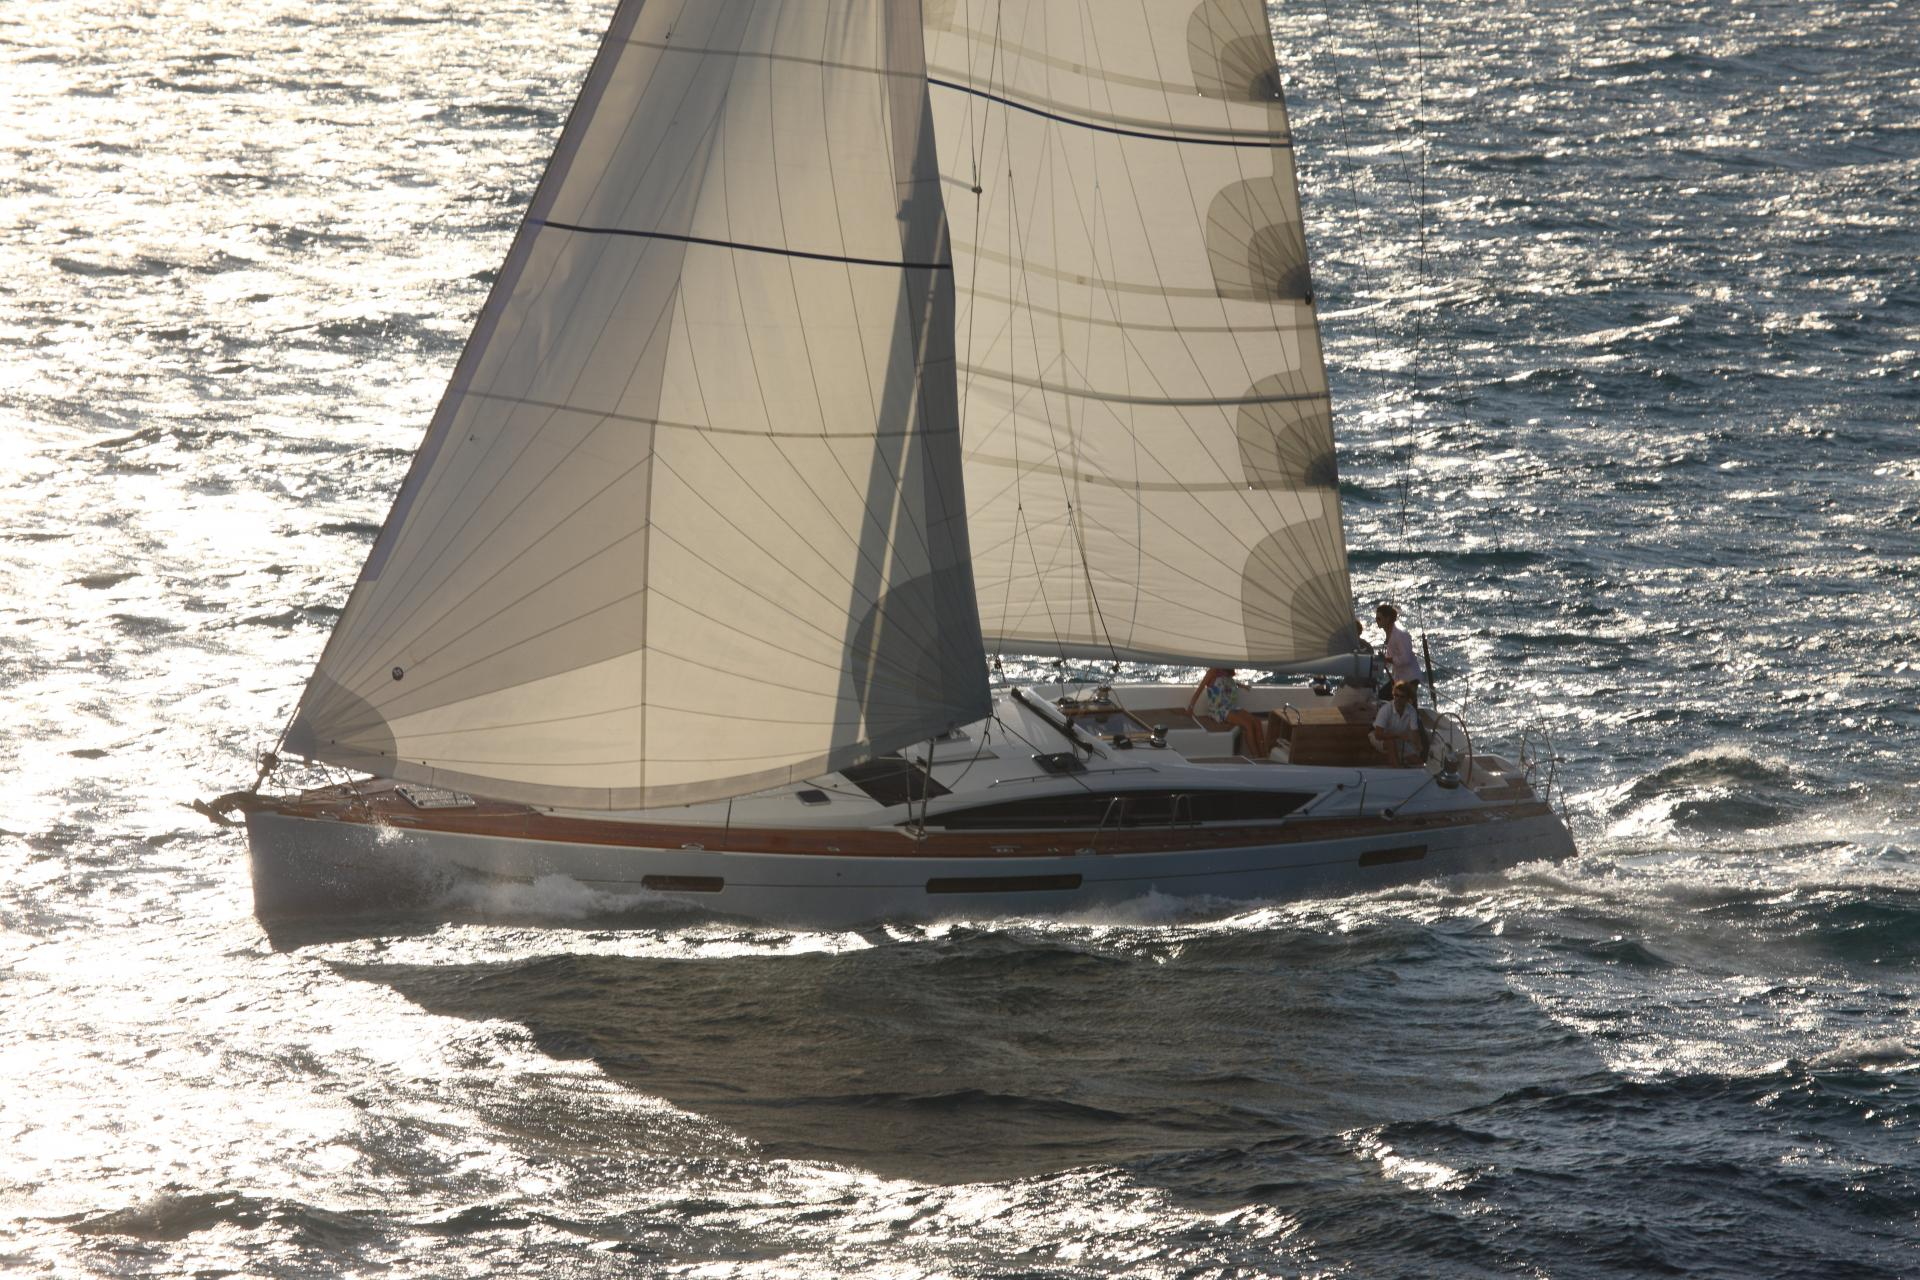 Jeanneau 53 Economy - Sailing Yacht for Charter in Greece